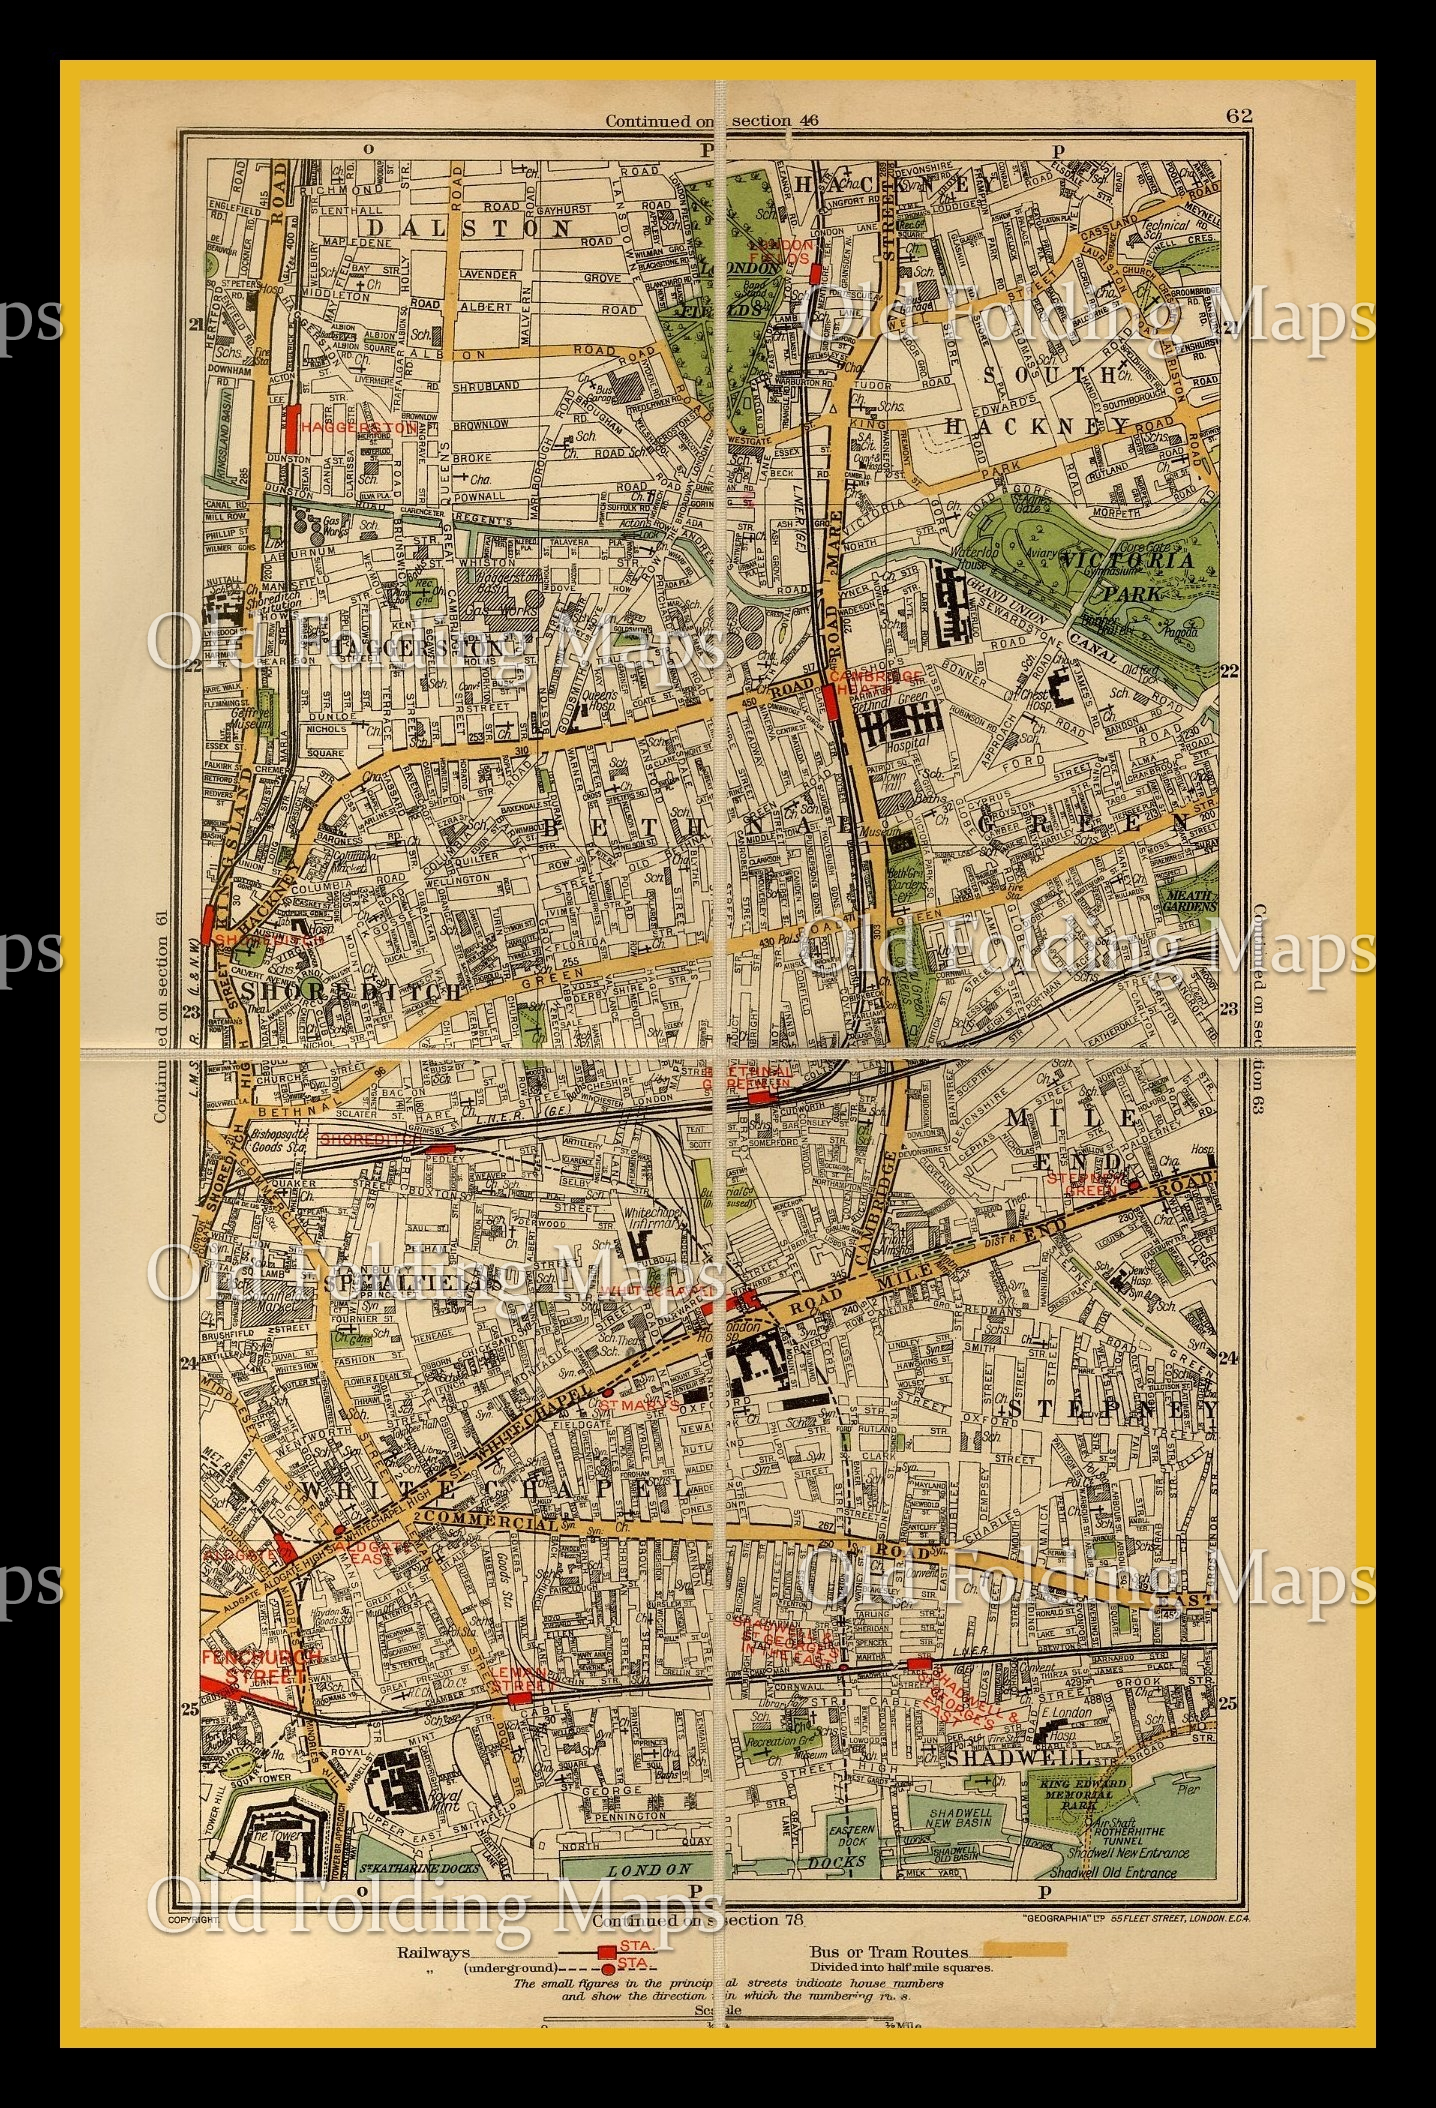 Old London Map Of Dalston Shoreditch Spital Fields Circa 1930 S